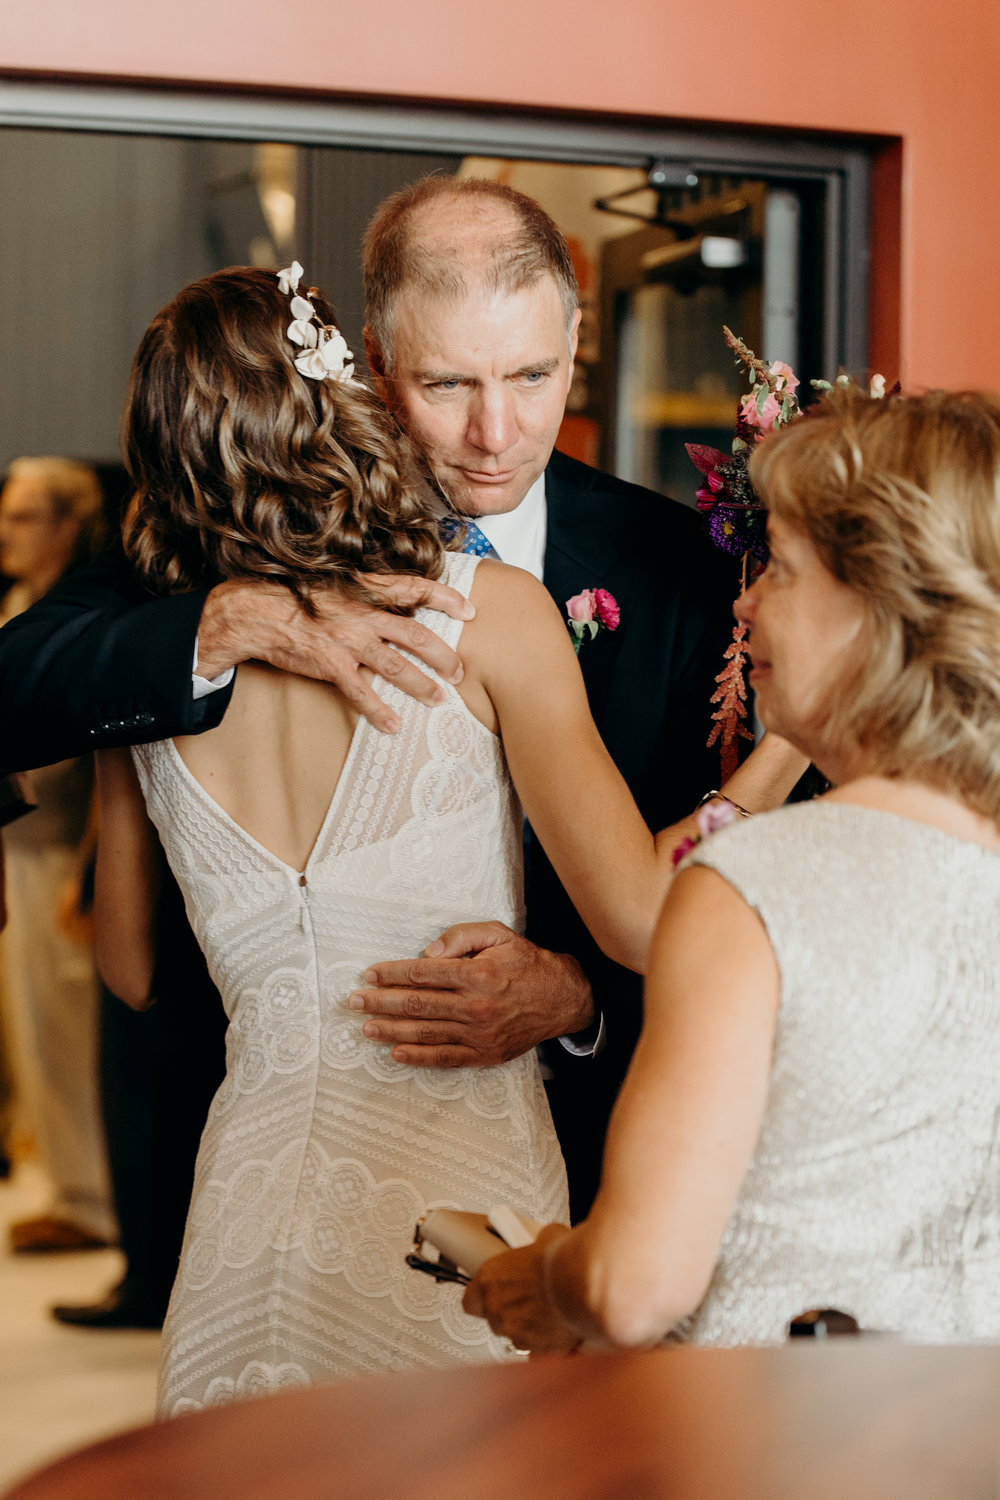 Father of bride hugs her after wedding.